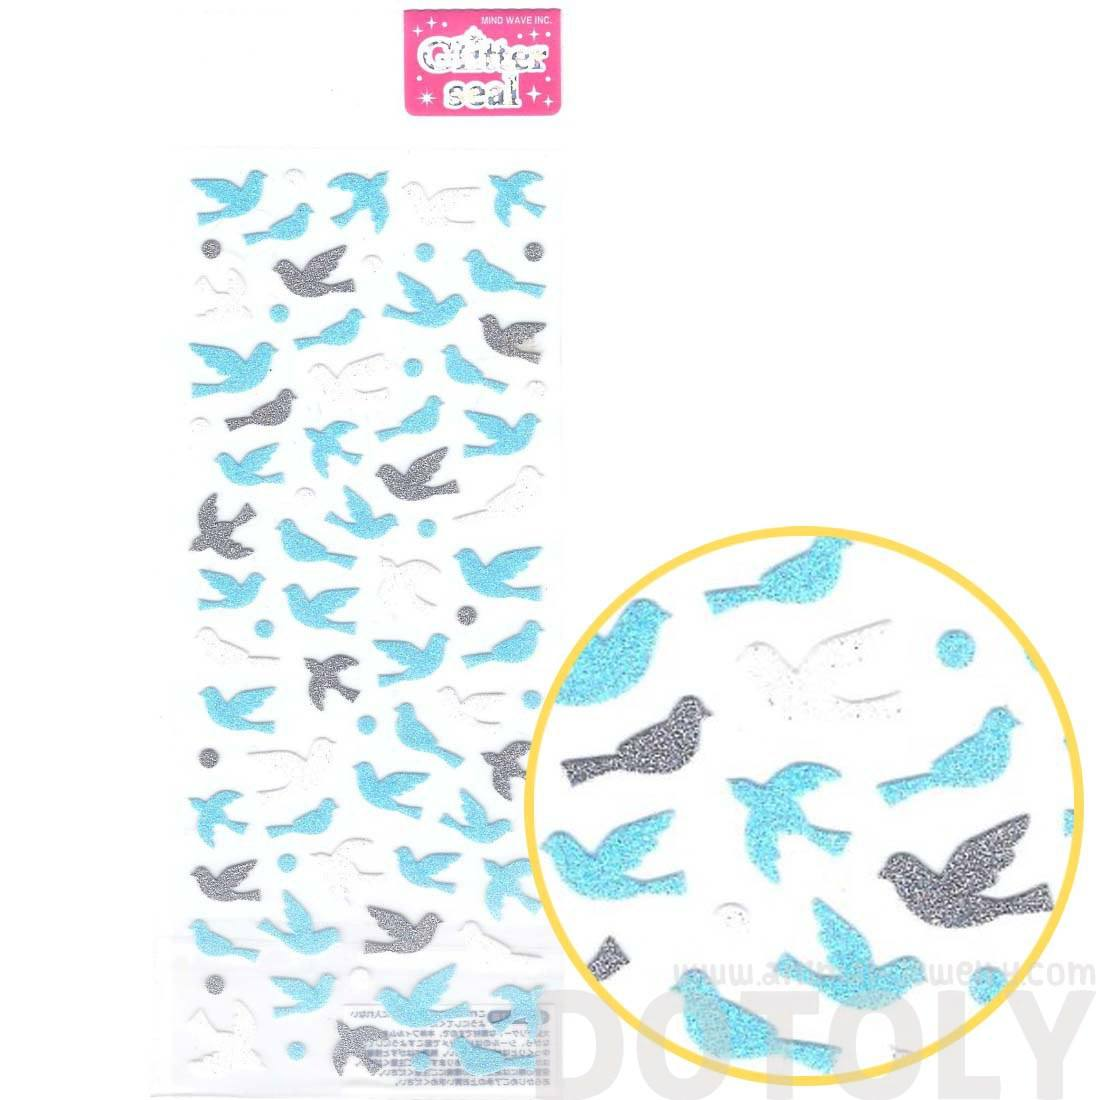 Birds and Doves Shaped Shimmer Decorative Stickers for DIY Crafts